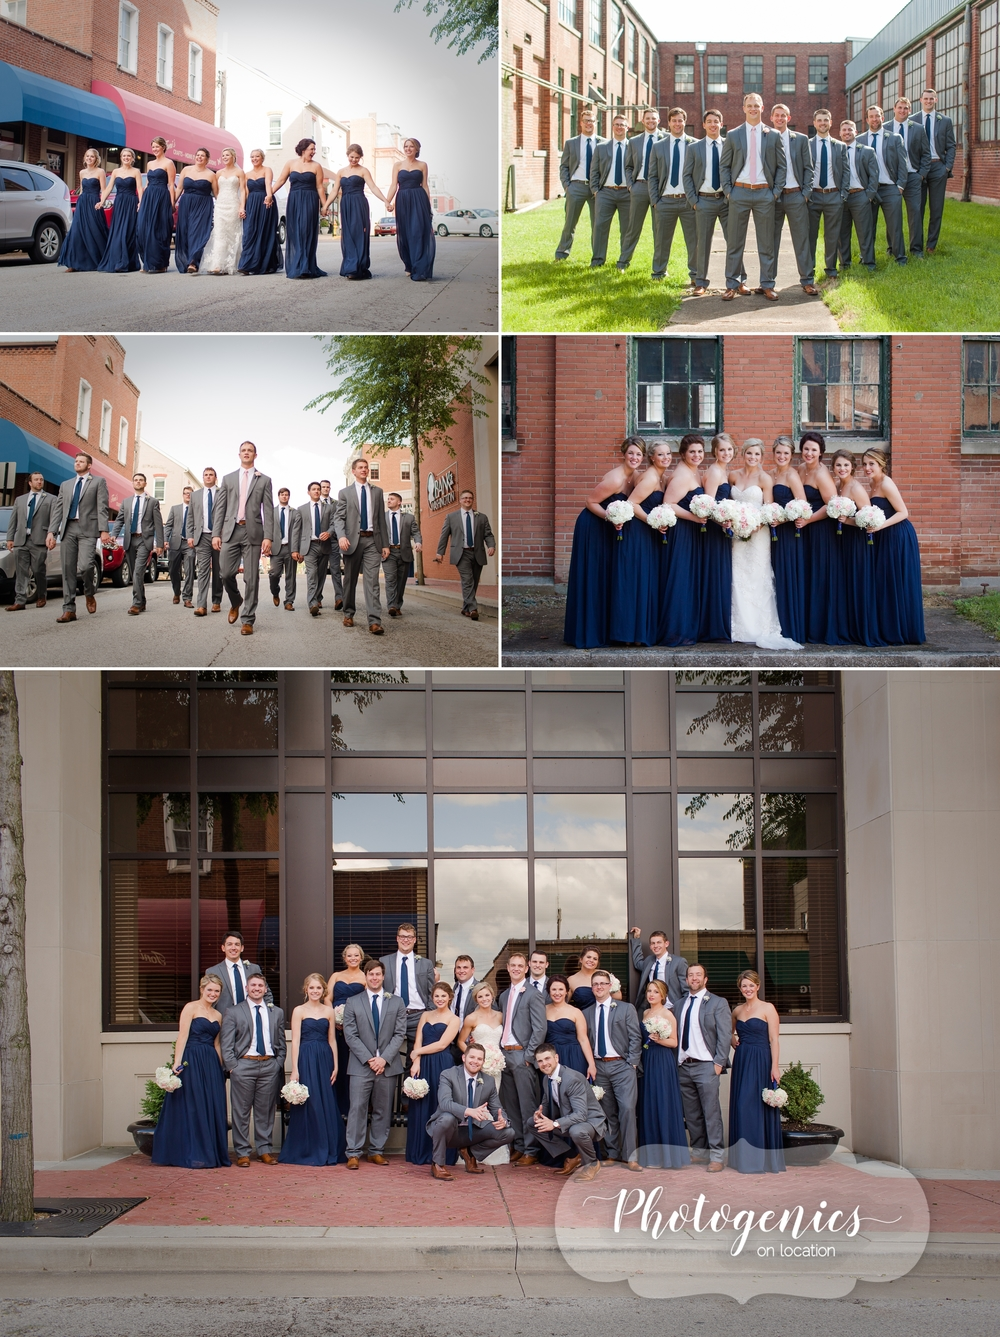 wedding_spring_photo_ideas_missouri_navy_large_wedding_party_bride_groom_bridesmaids_groomsmen 8.jpg